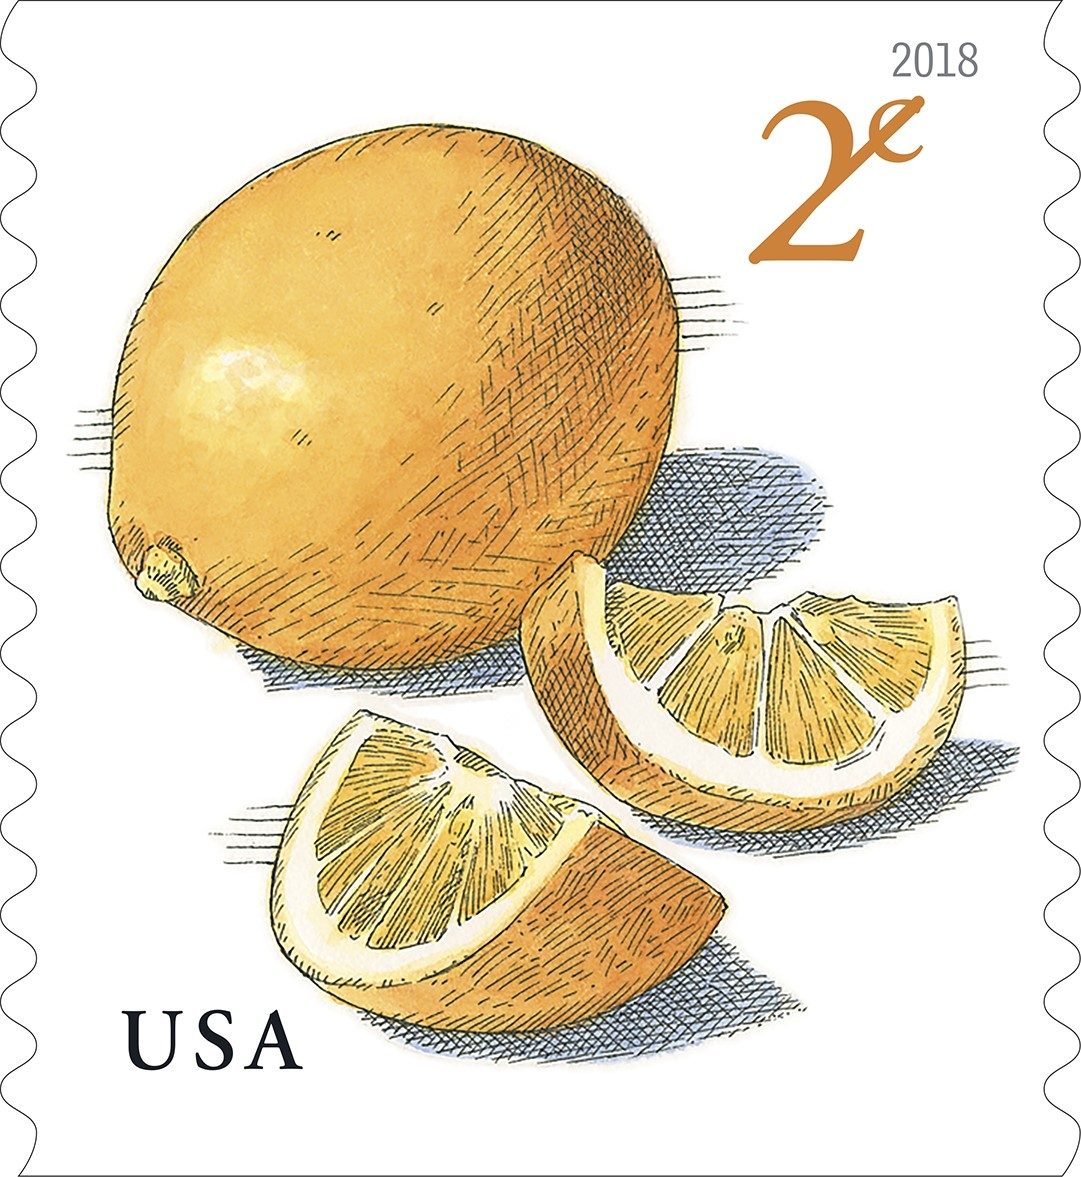 United States - 2018-01-19: Meyer Lemons - 2 cent definitive stamp